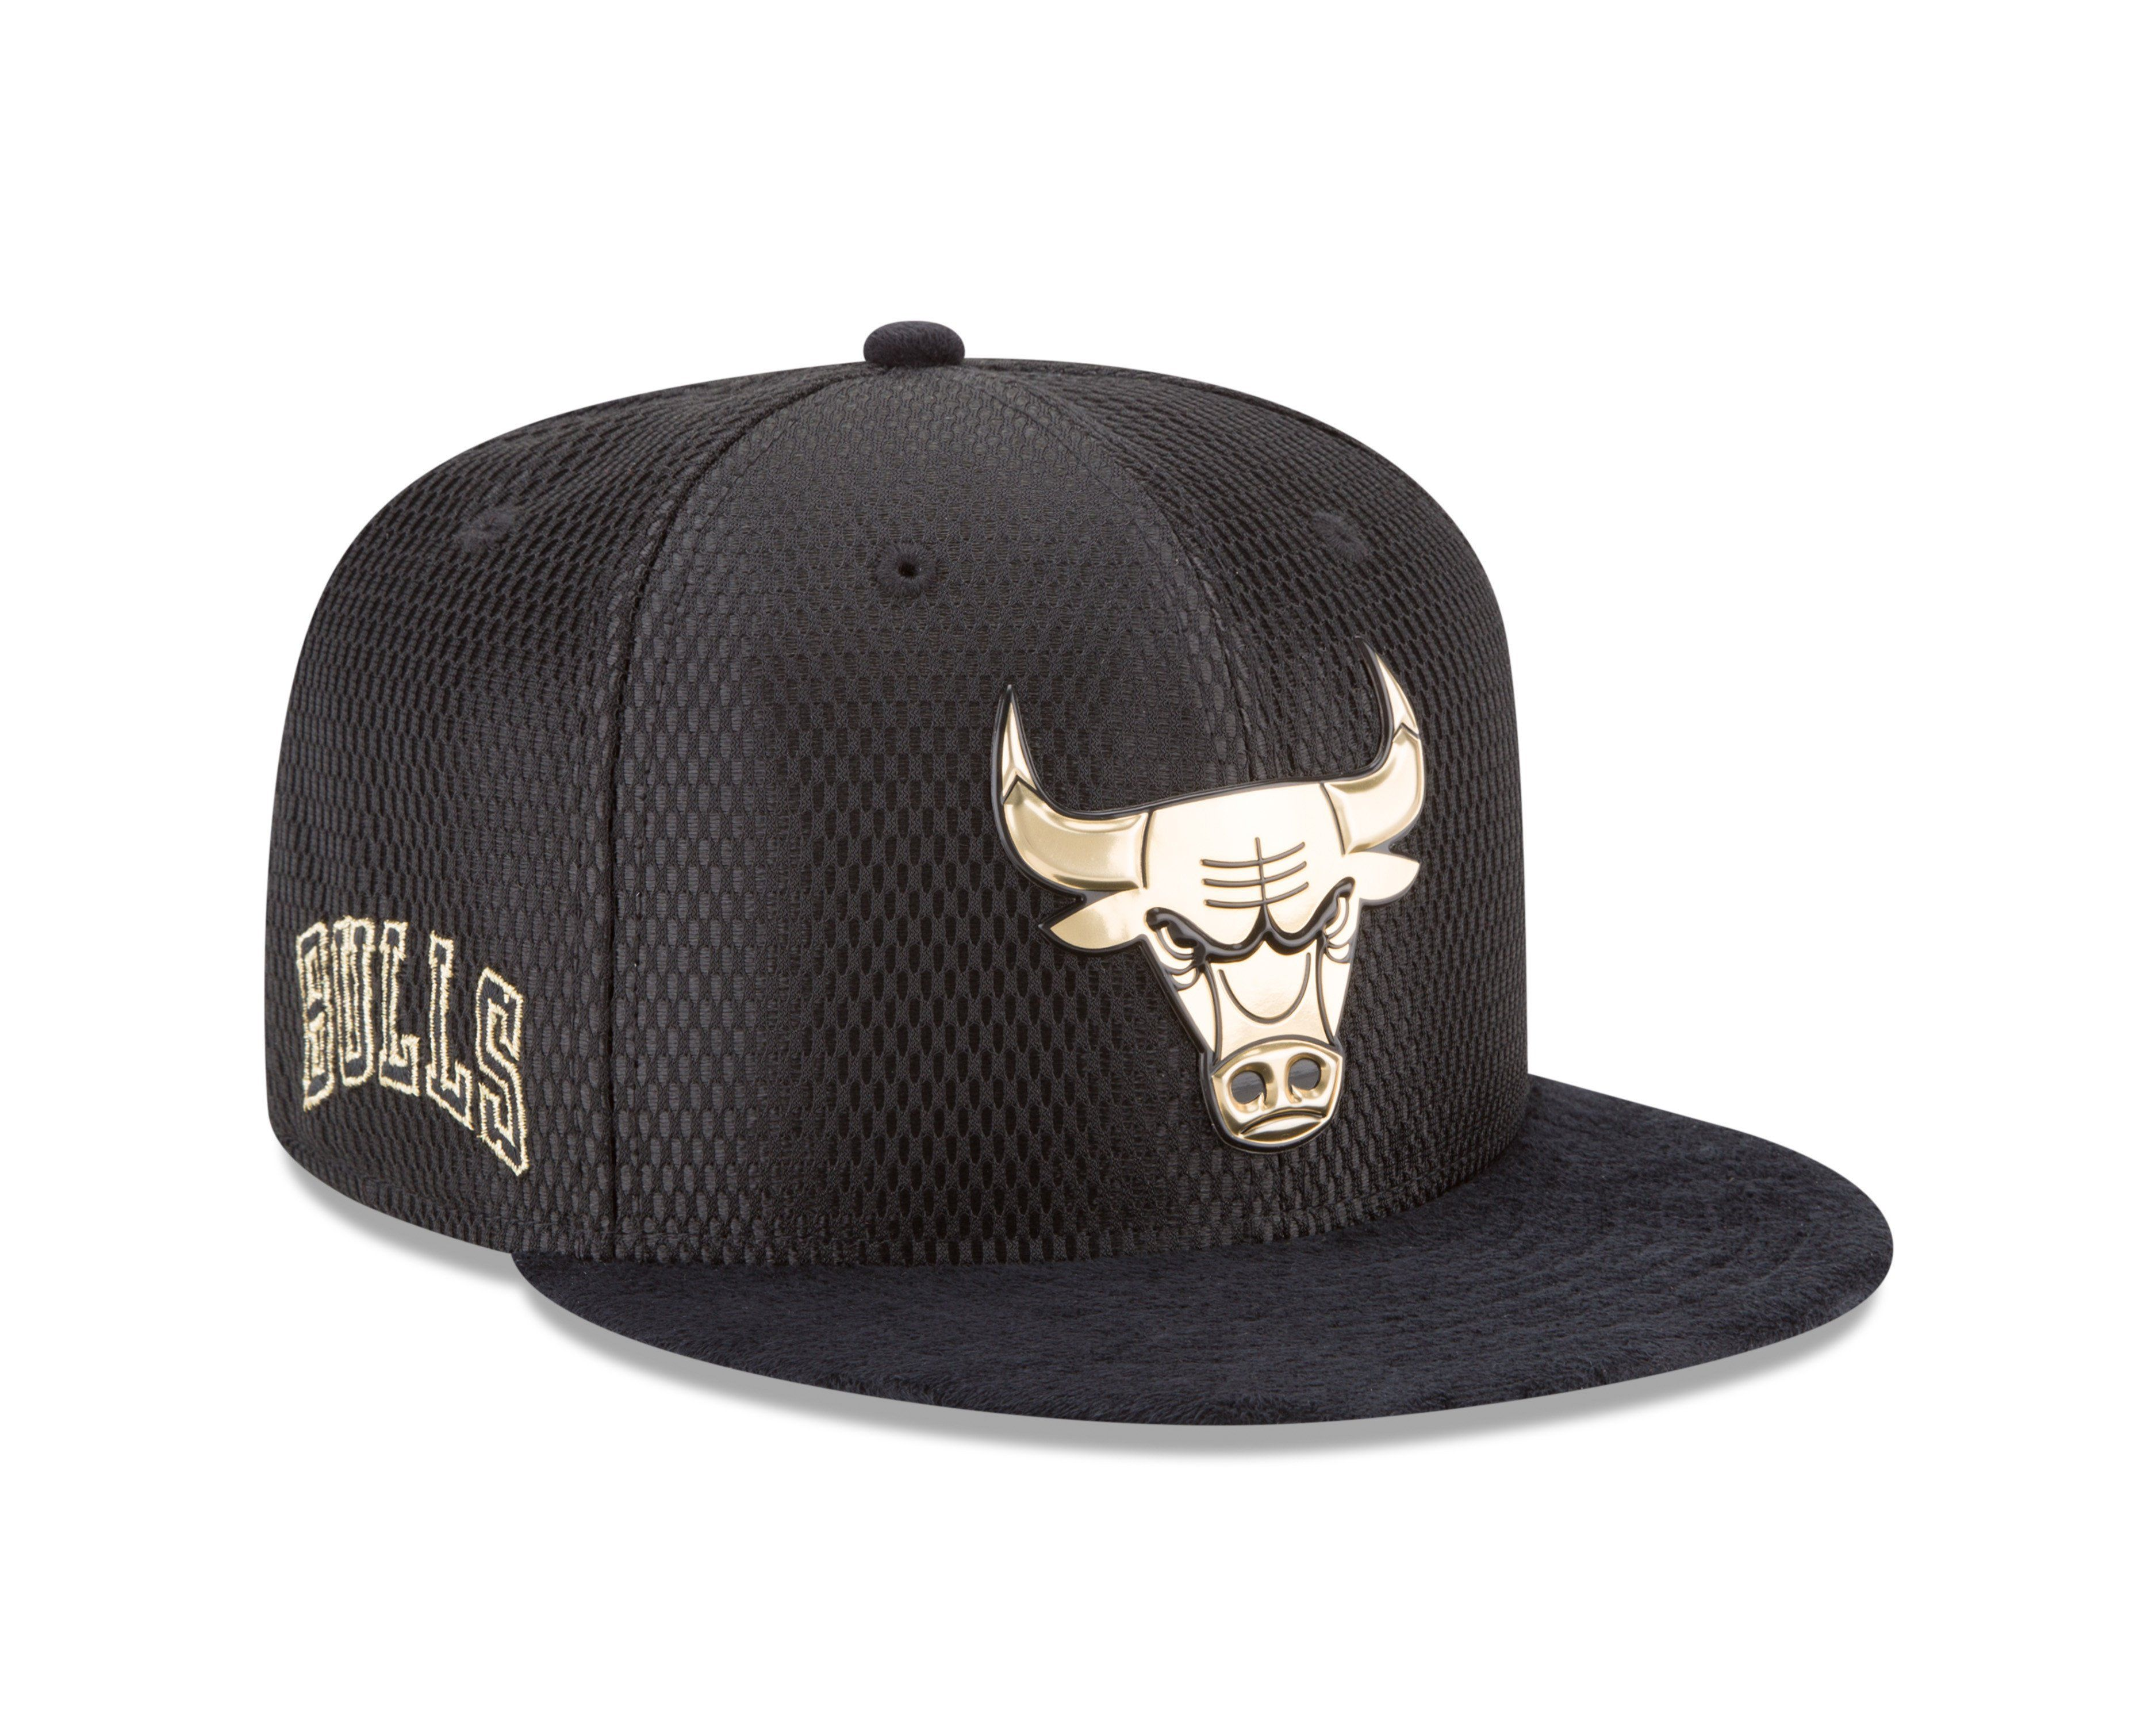 de30ad82e20 Chicago Bulls NBA17 Gold On Court 9FIFTY Snapback Hat By New Era ...